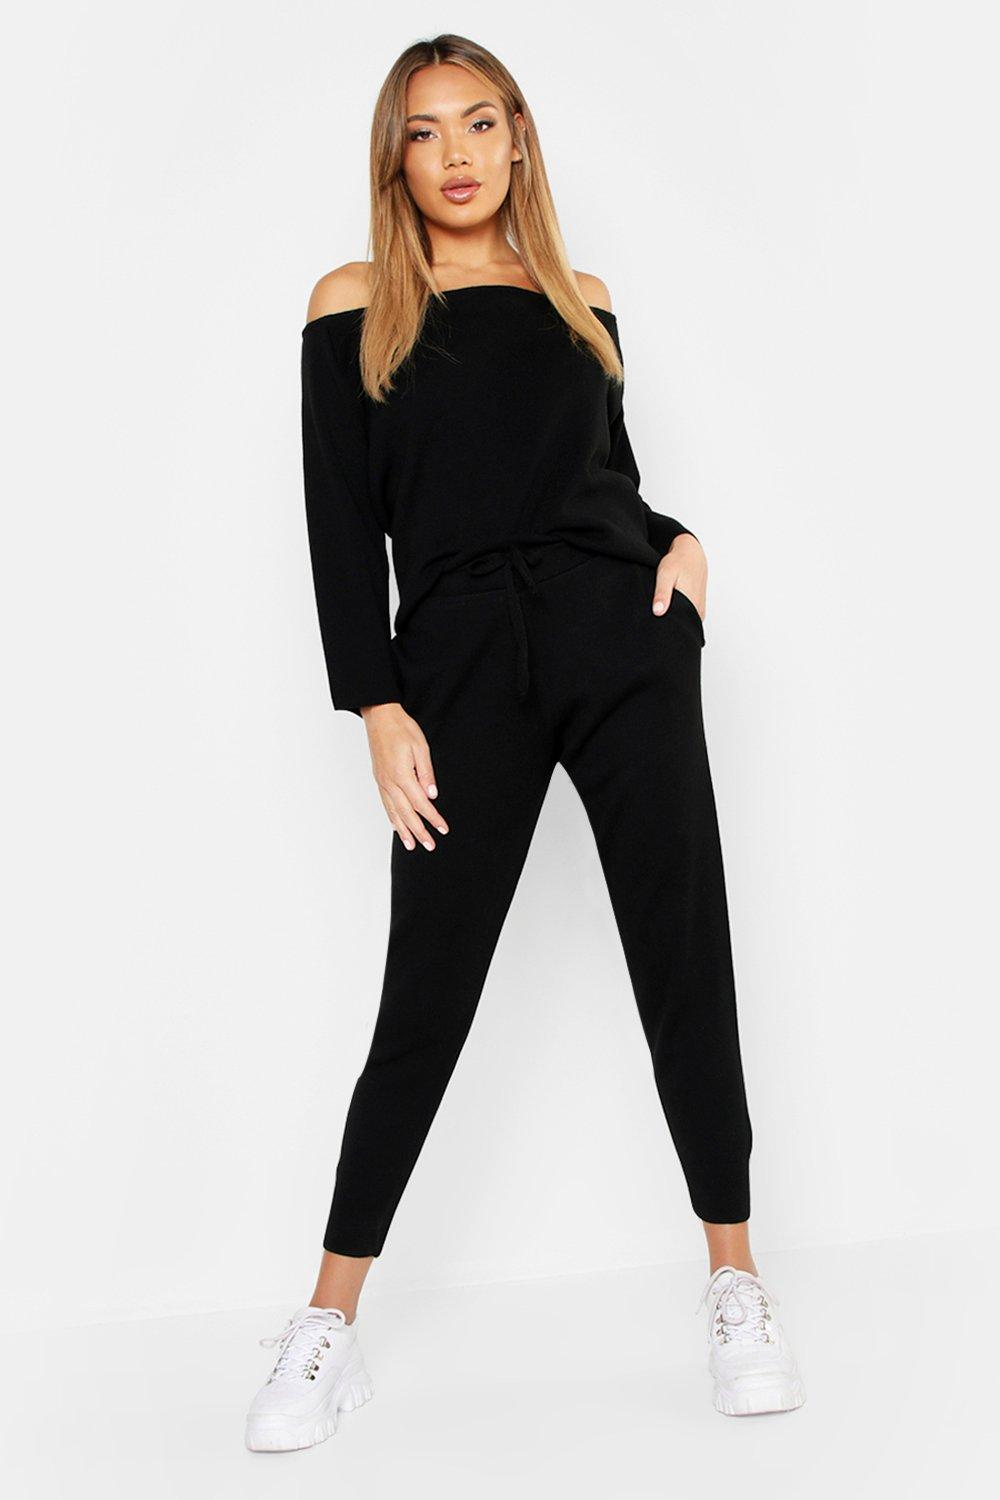 Womens Bardot Knitted Lounge Set - black - S, Black - Boohoo.com